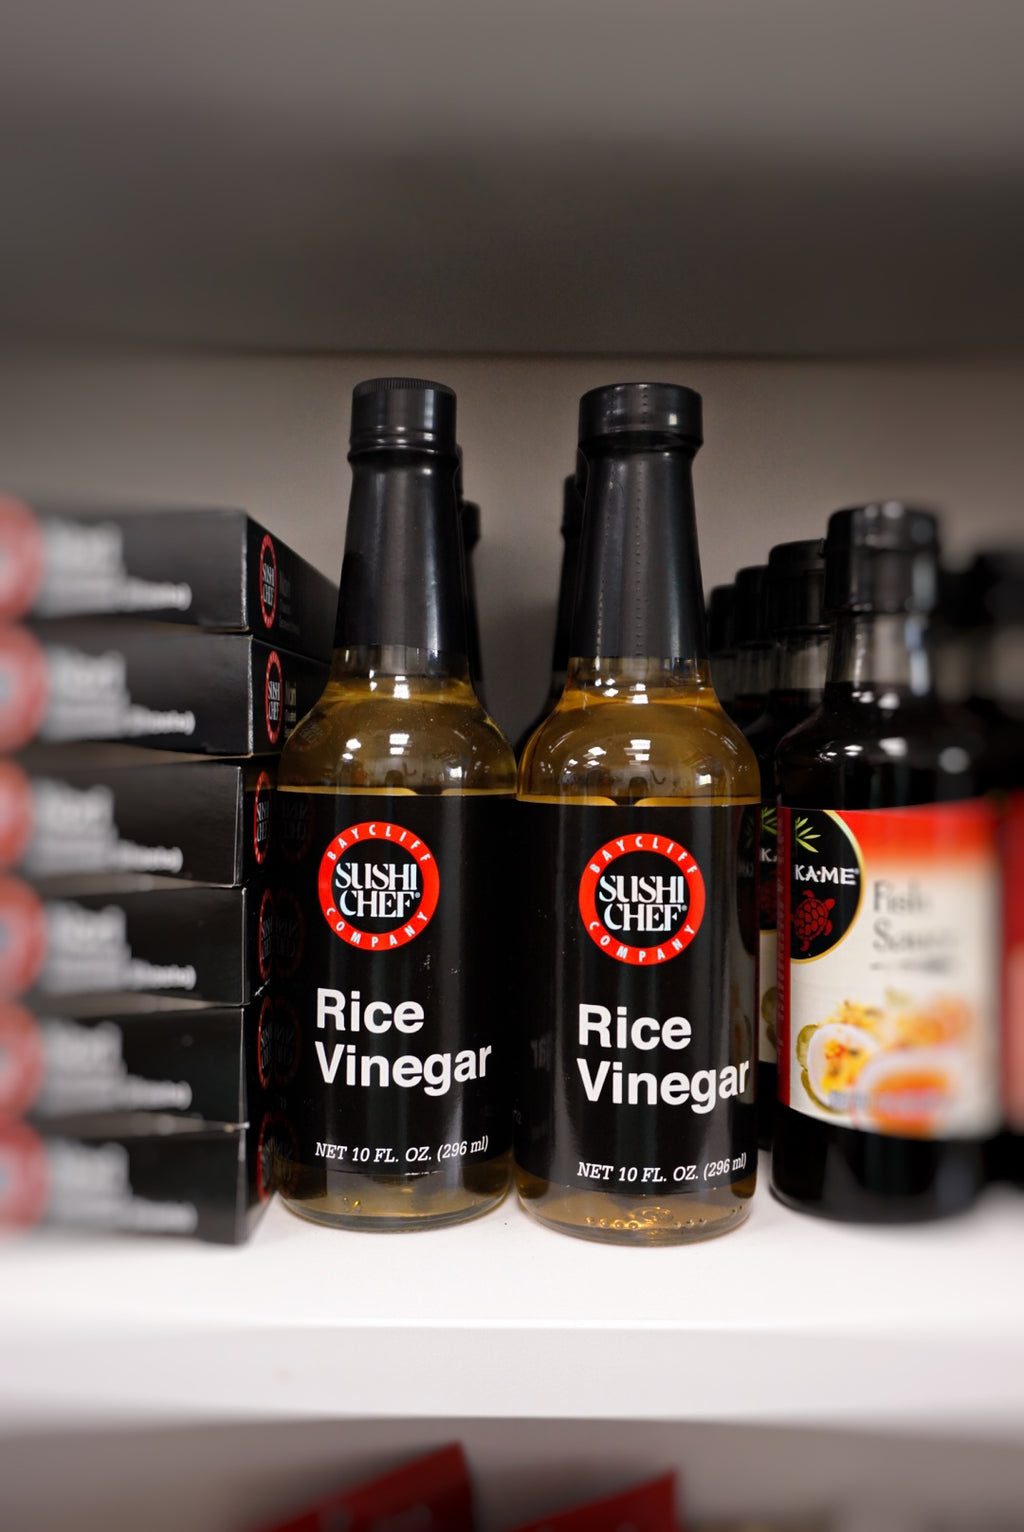 Sushi Chef Rice Vinegar - Darien